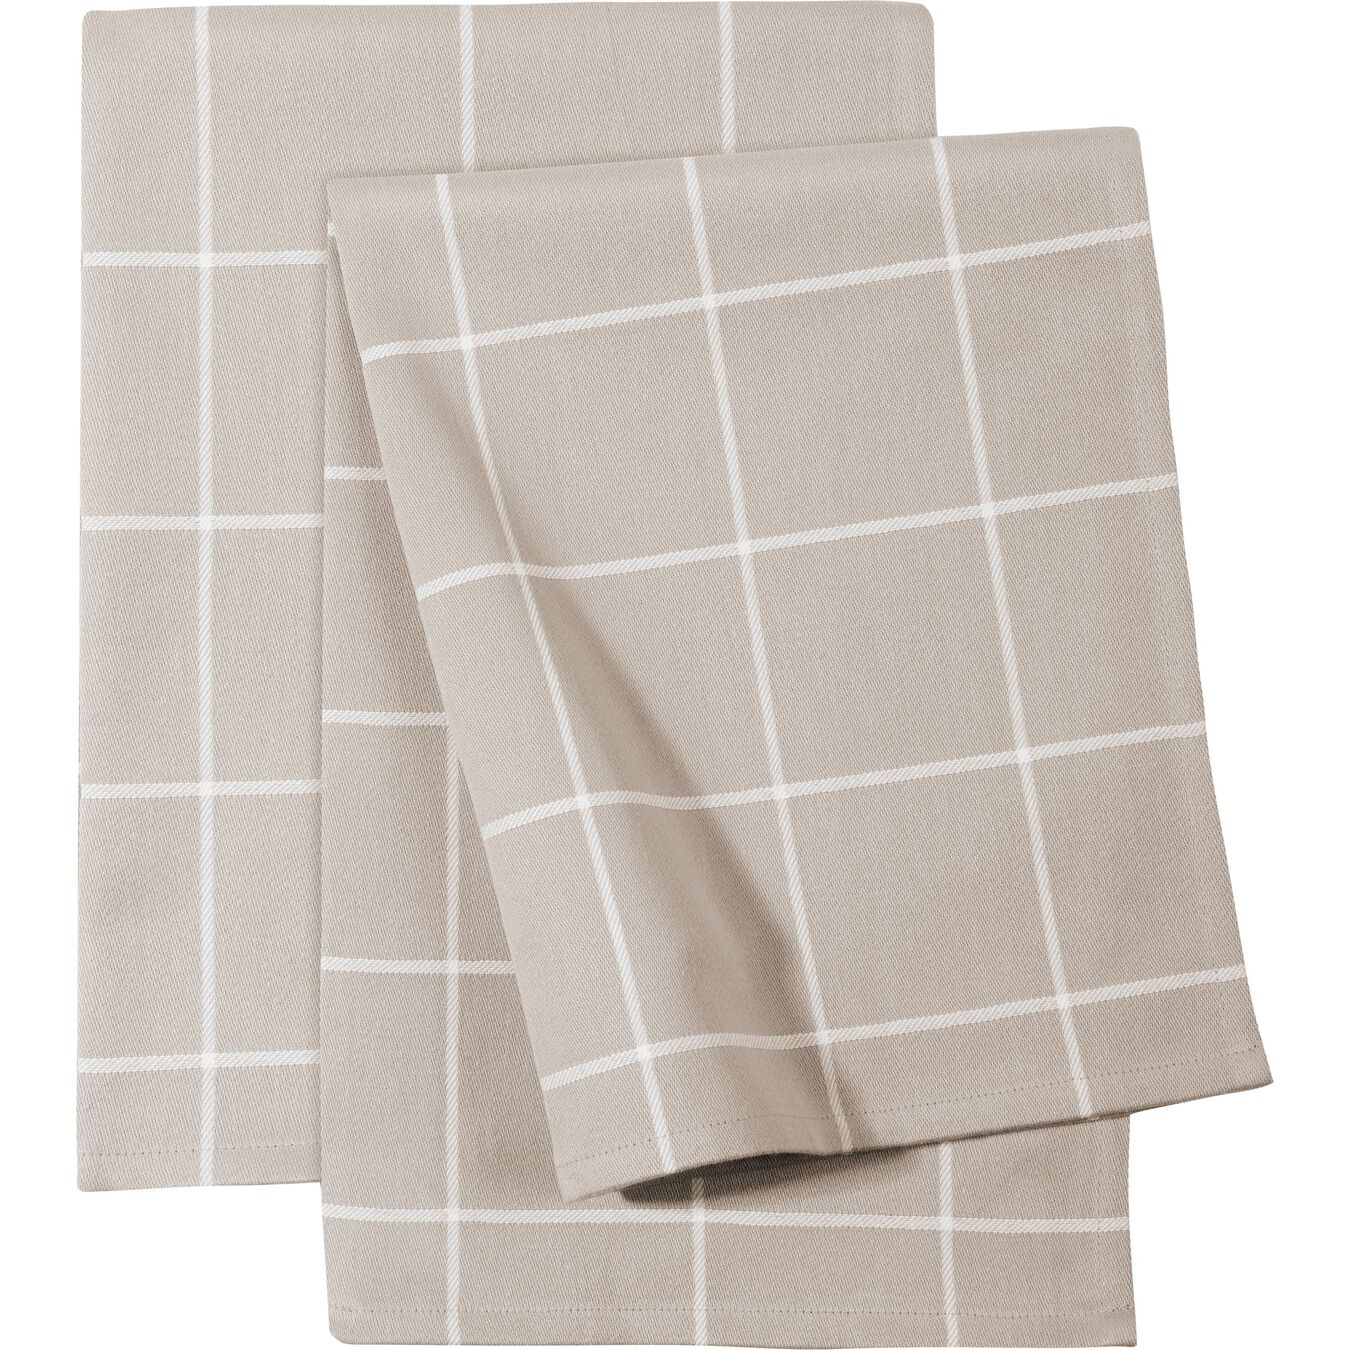 2 Piece 2 Piece Kitchen towel set checkered, taupe,,large 1